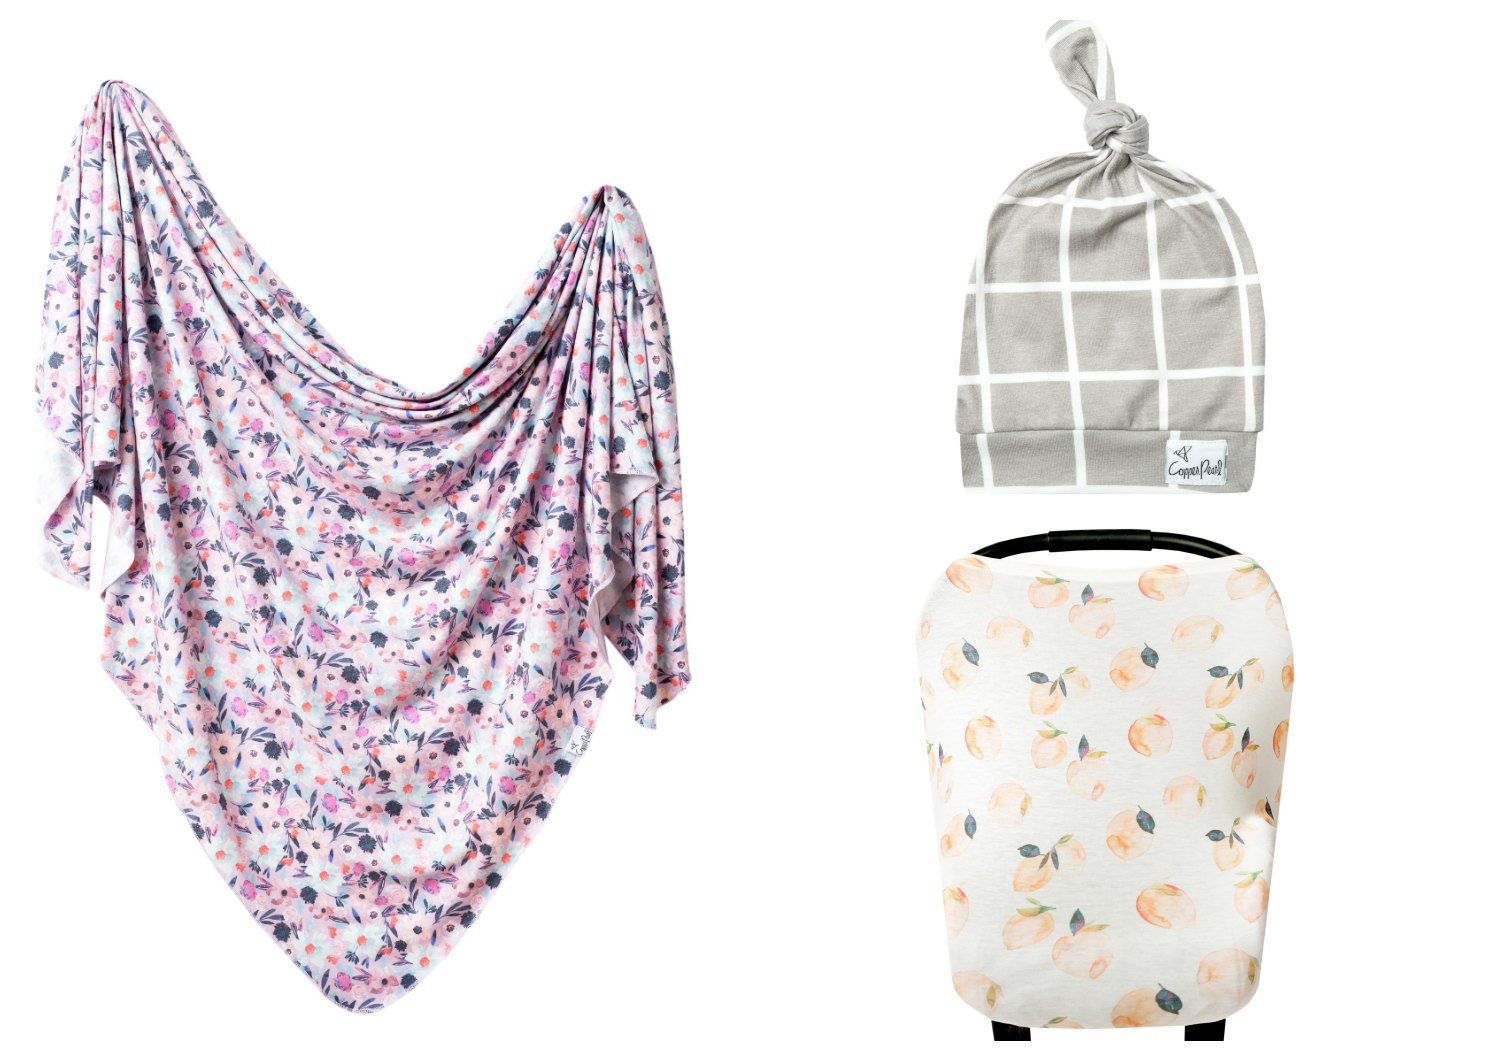 drool bibs for babies in cool prints